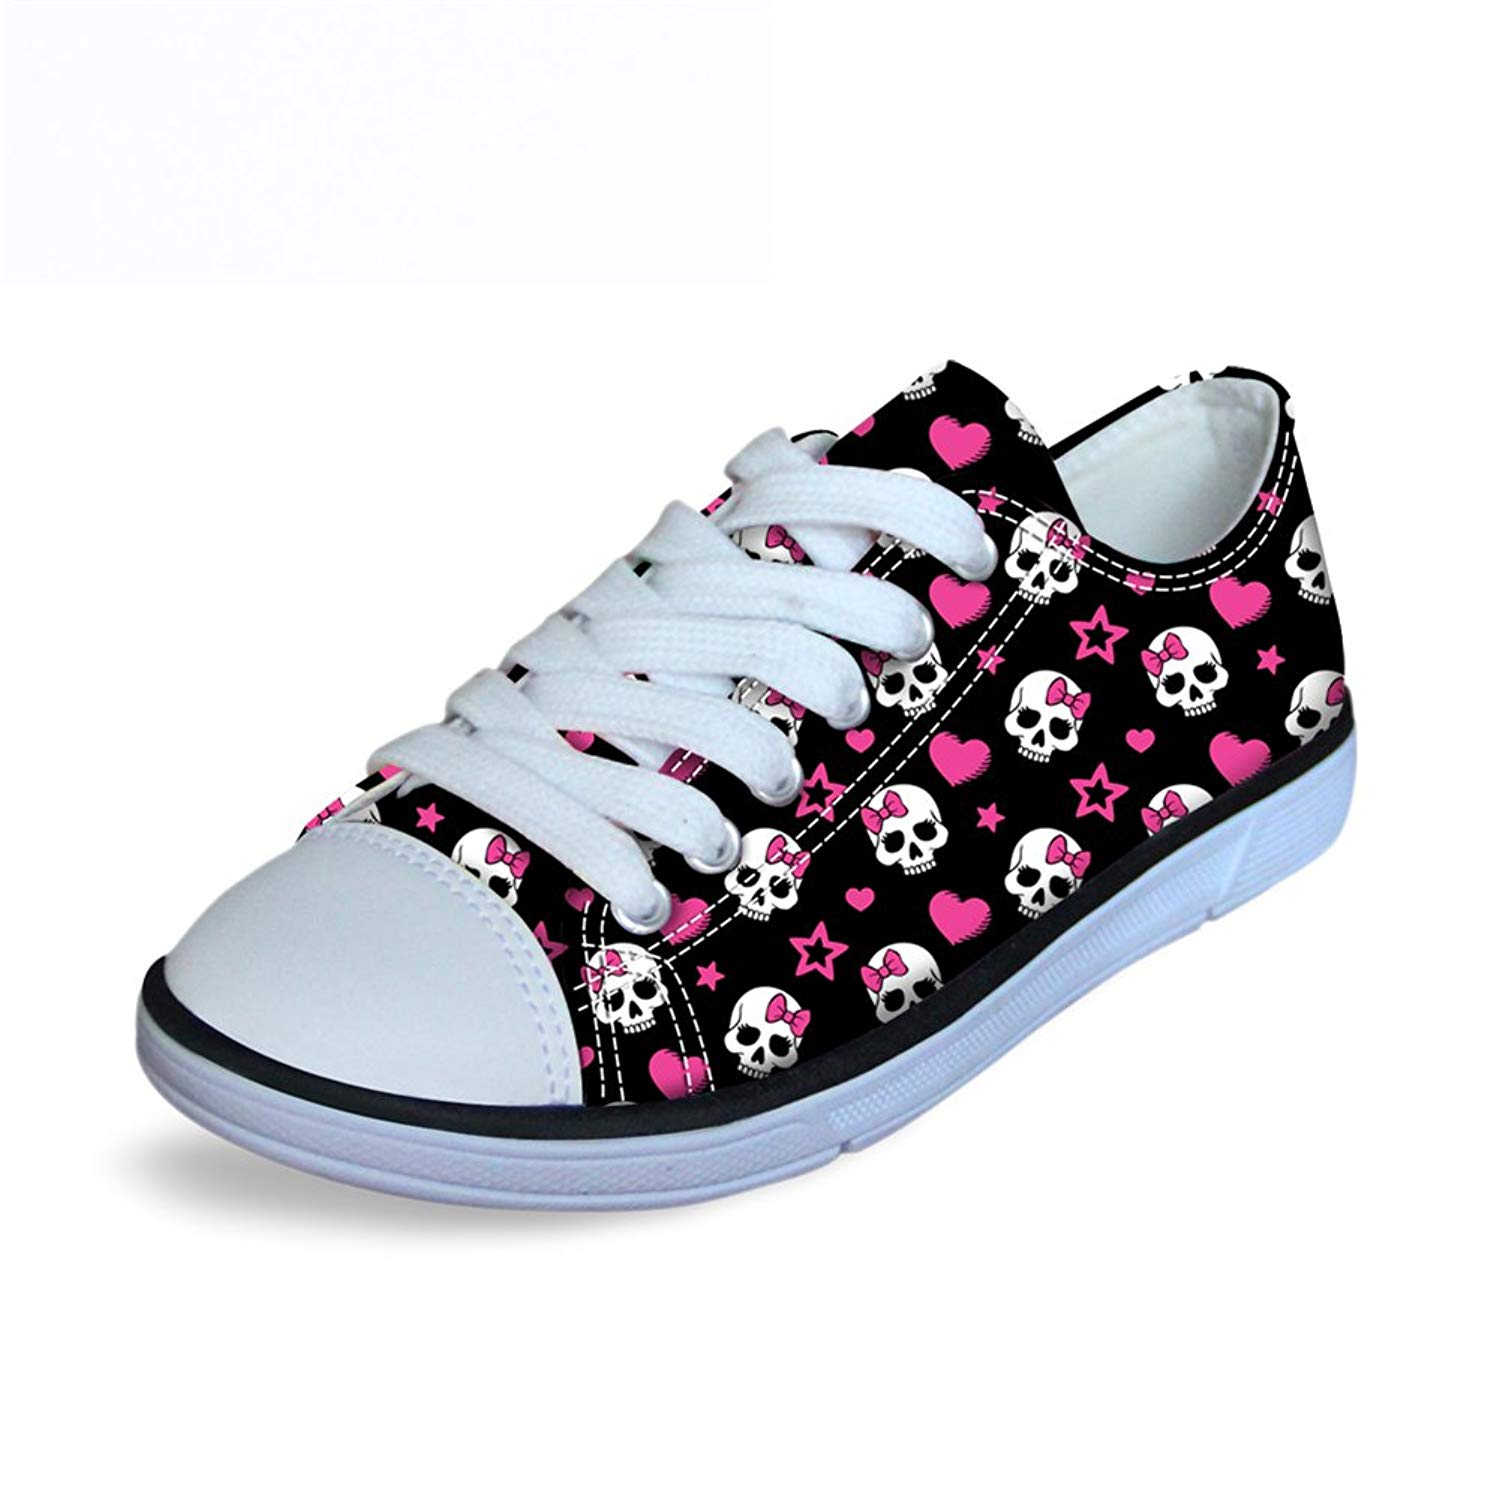 FOR U DESIGNS Fashion Galaxy Canvas Shoes Mens Star Animals High Top Walking Sneakers